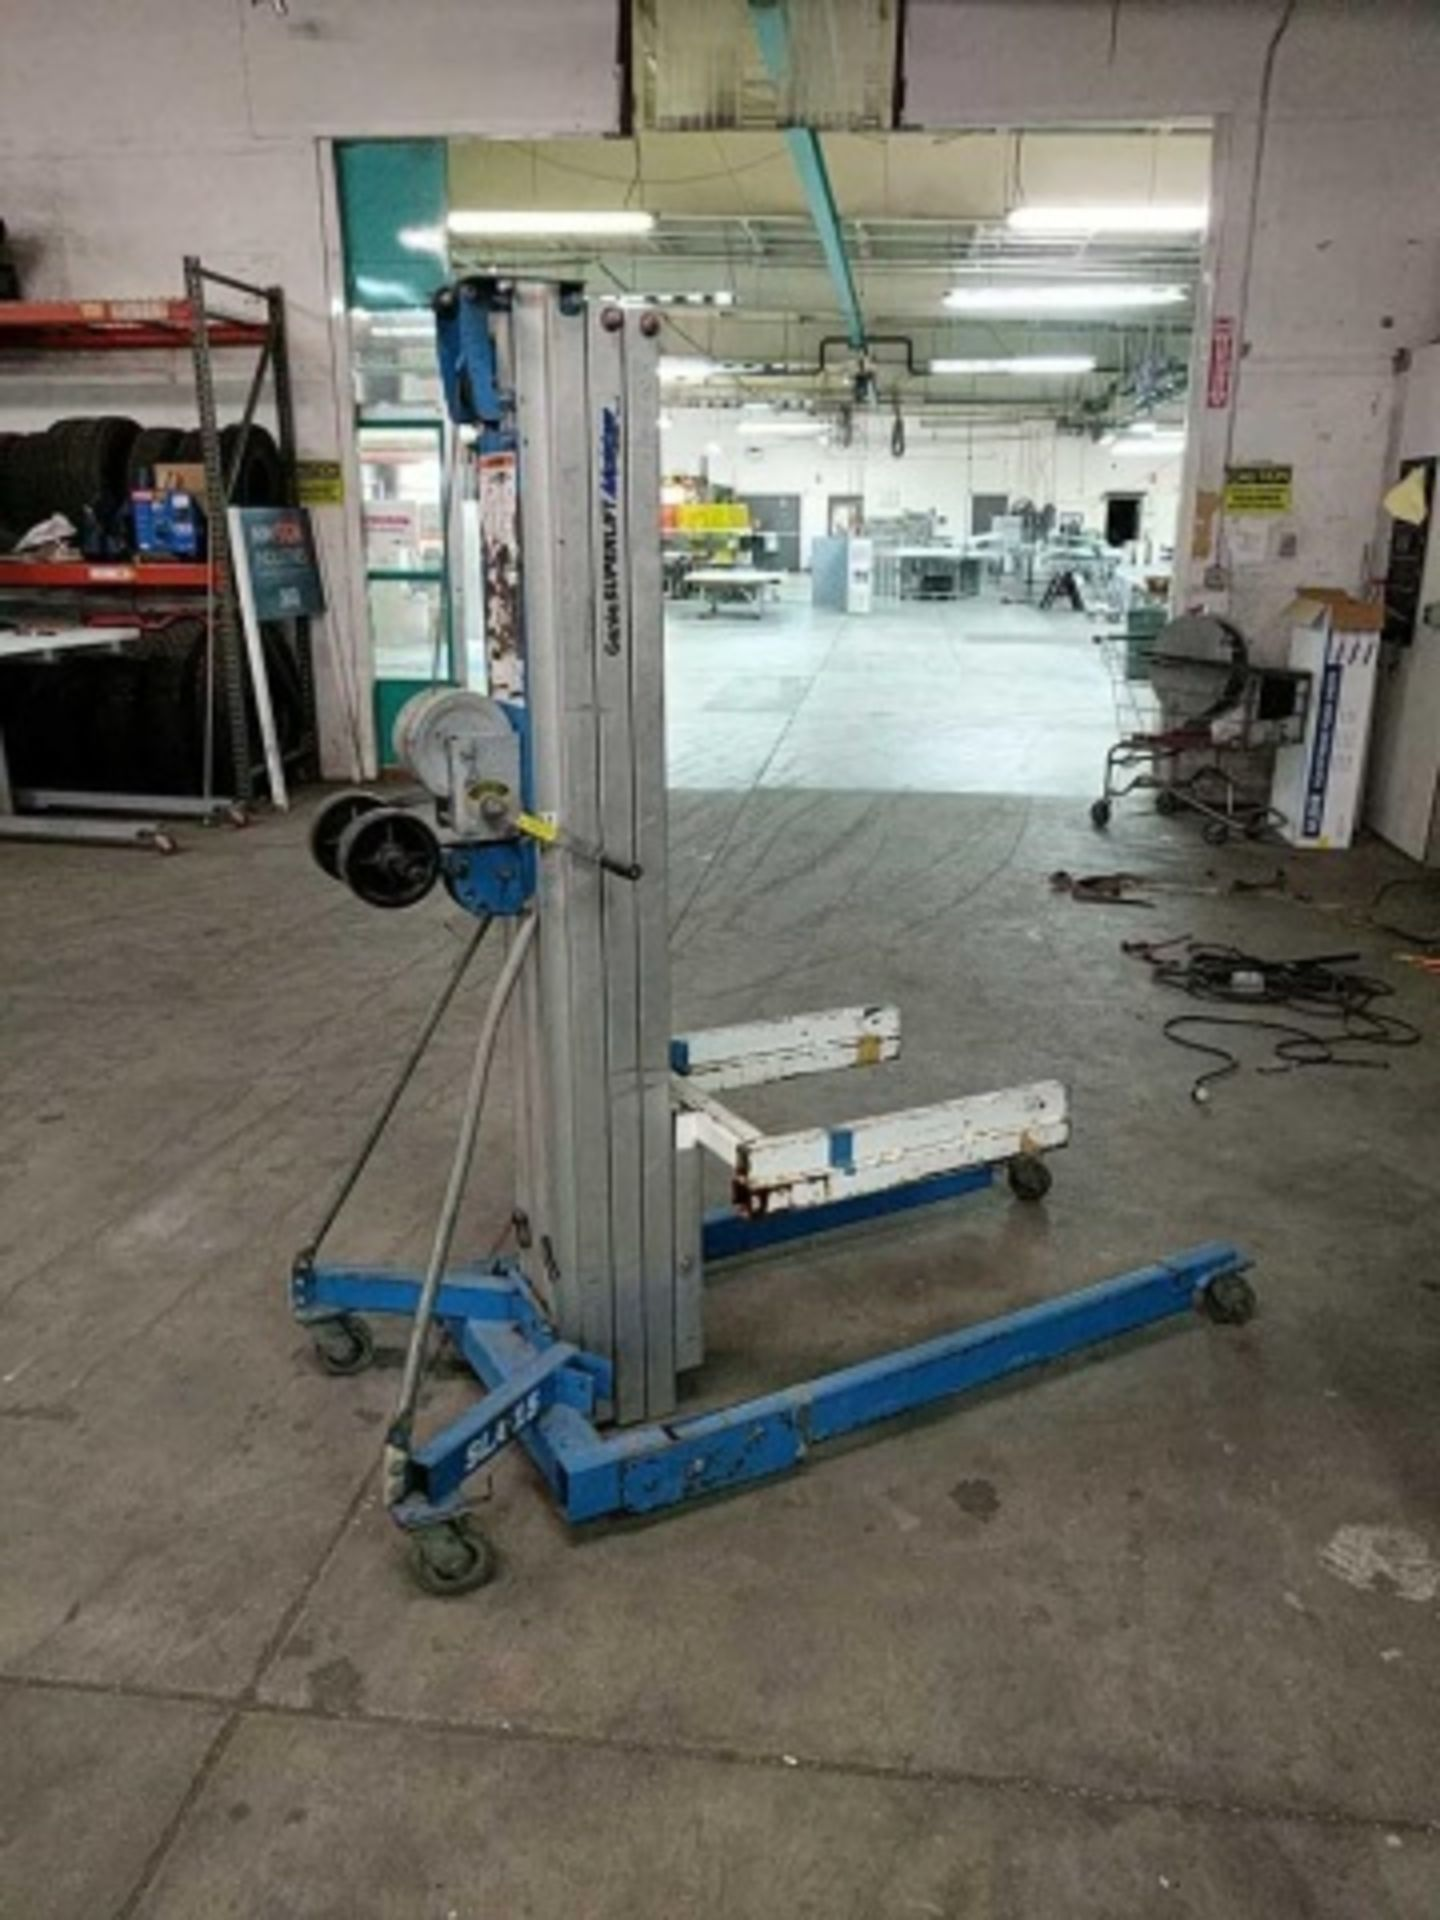 Genie Superlift Advantage Manual Material Lift - Image 3 of 5